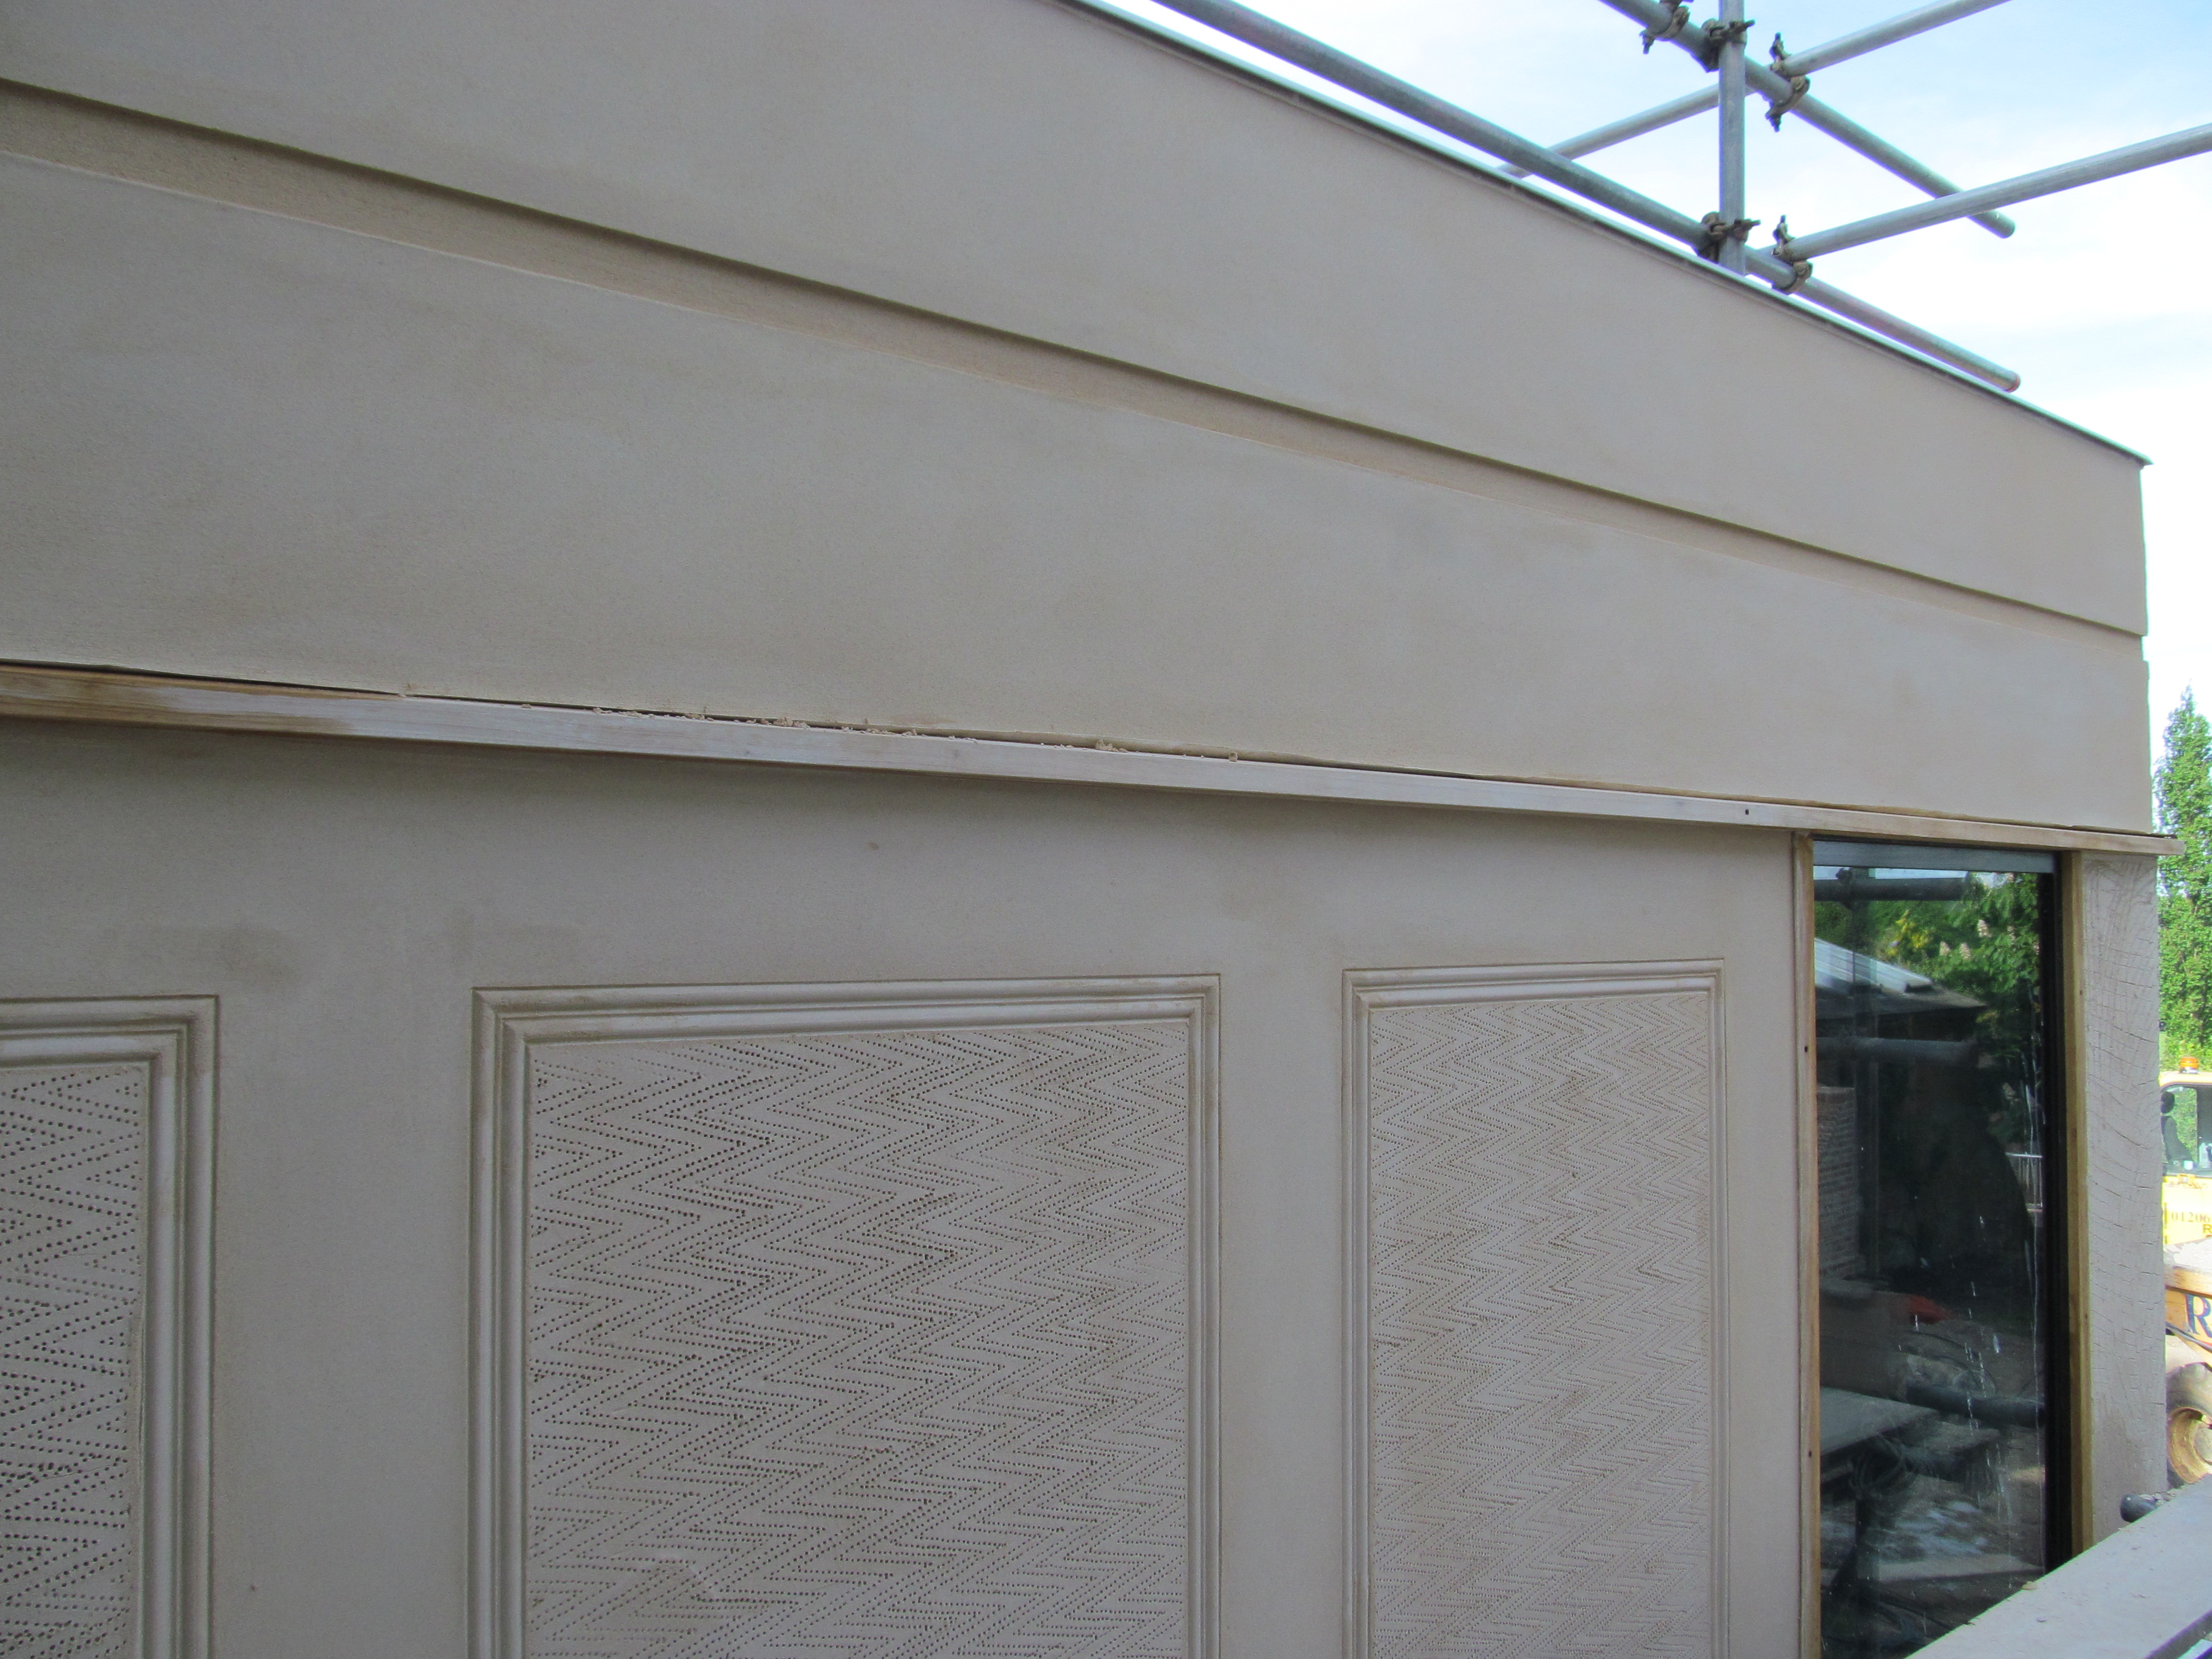 lime render - pargeting and rustication complete